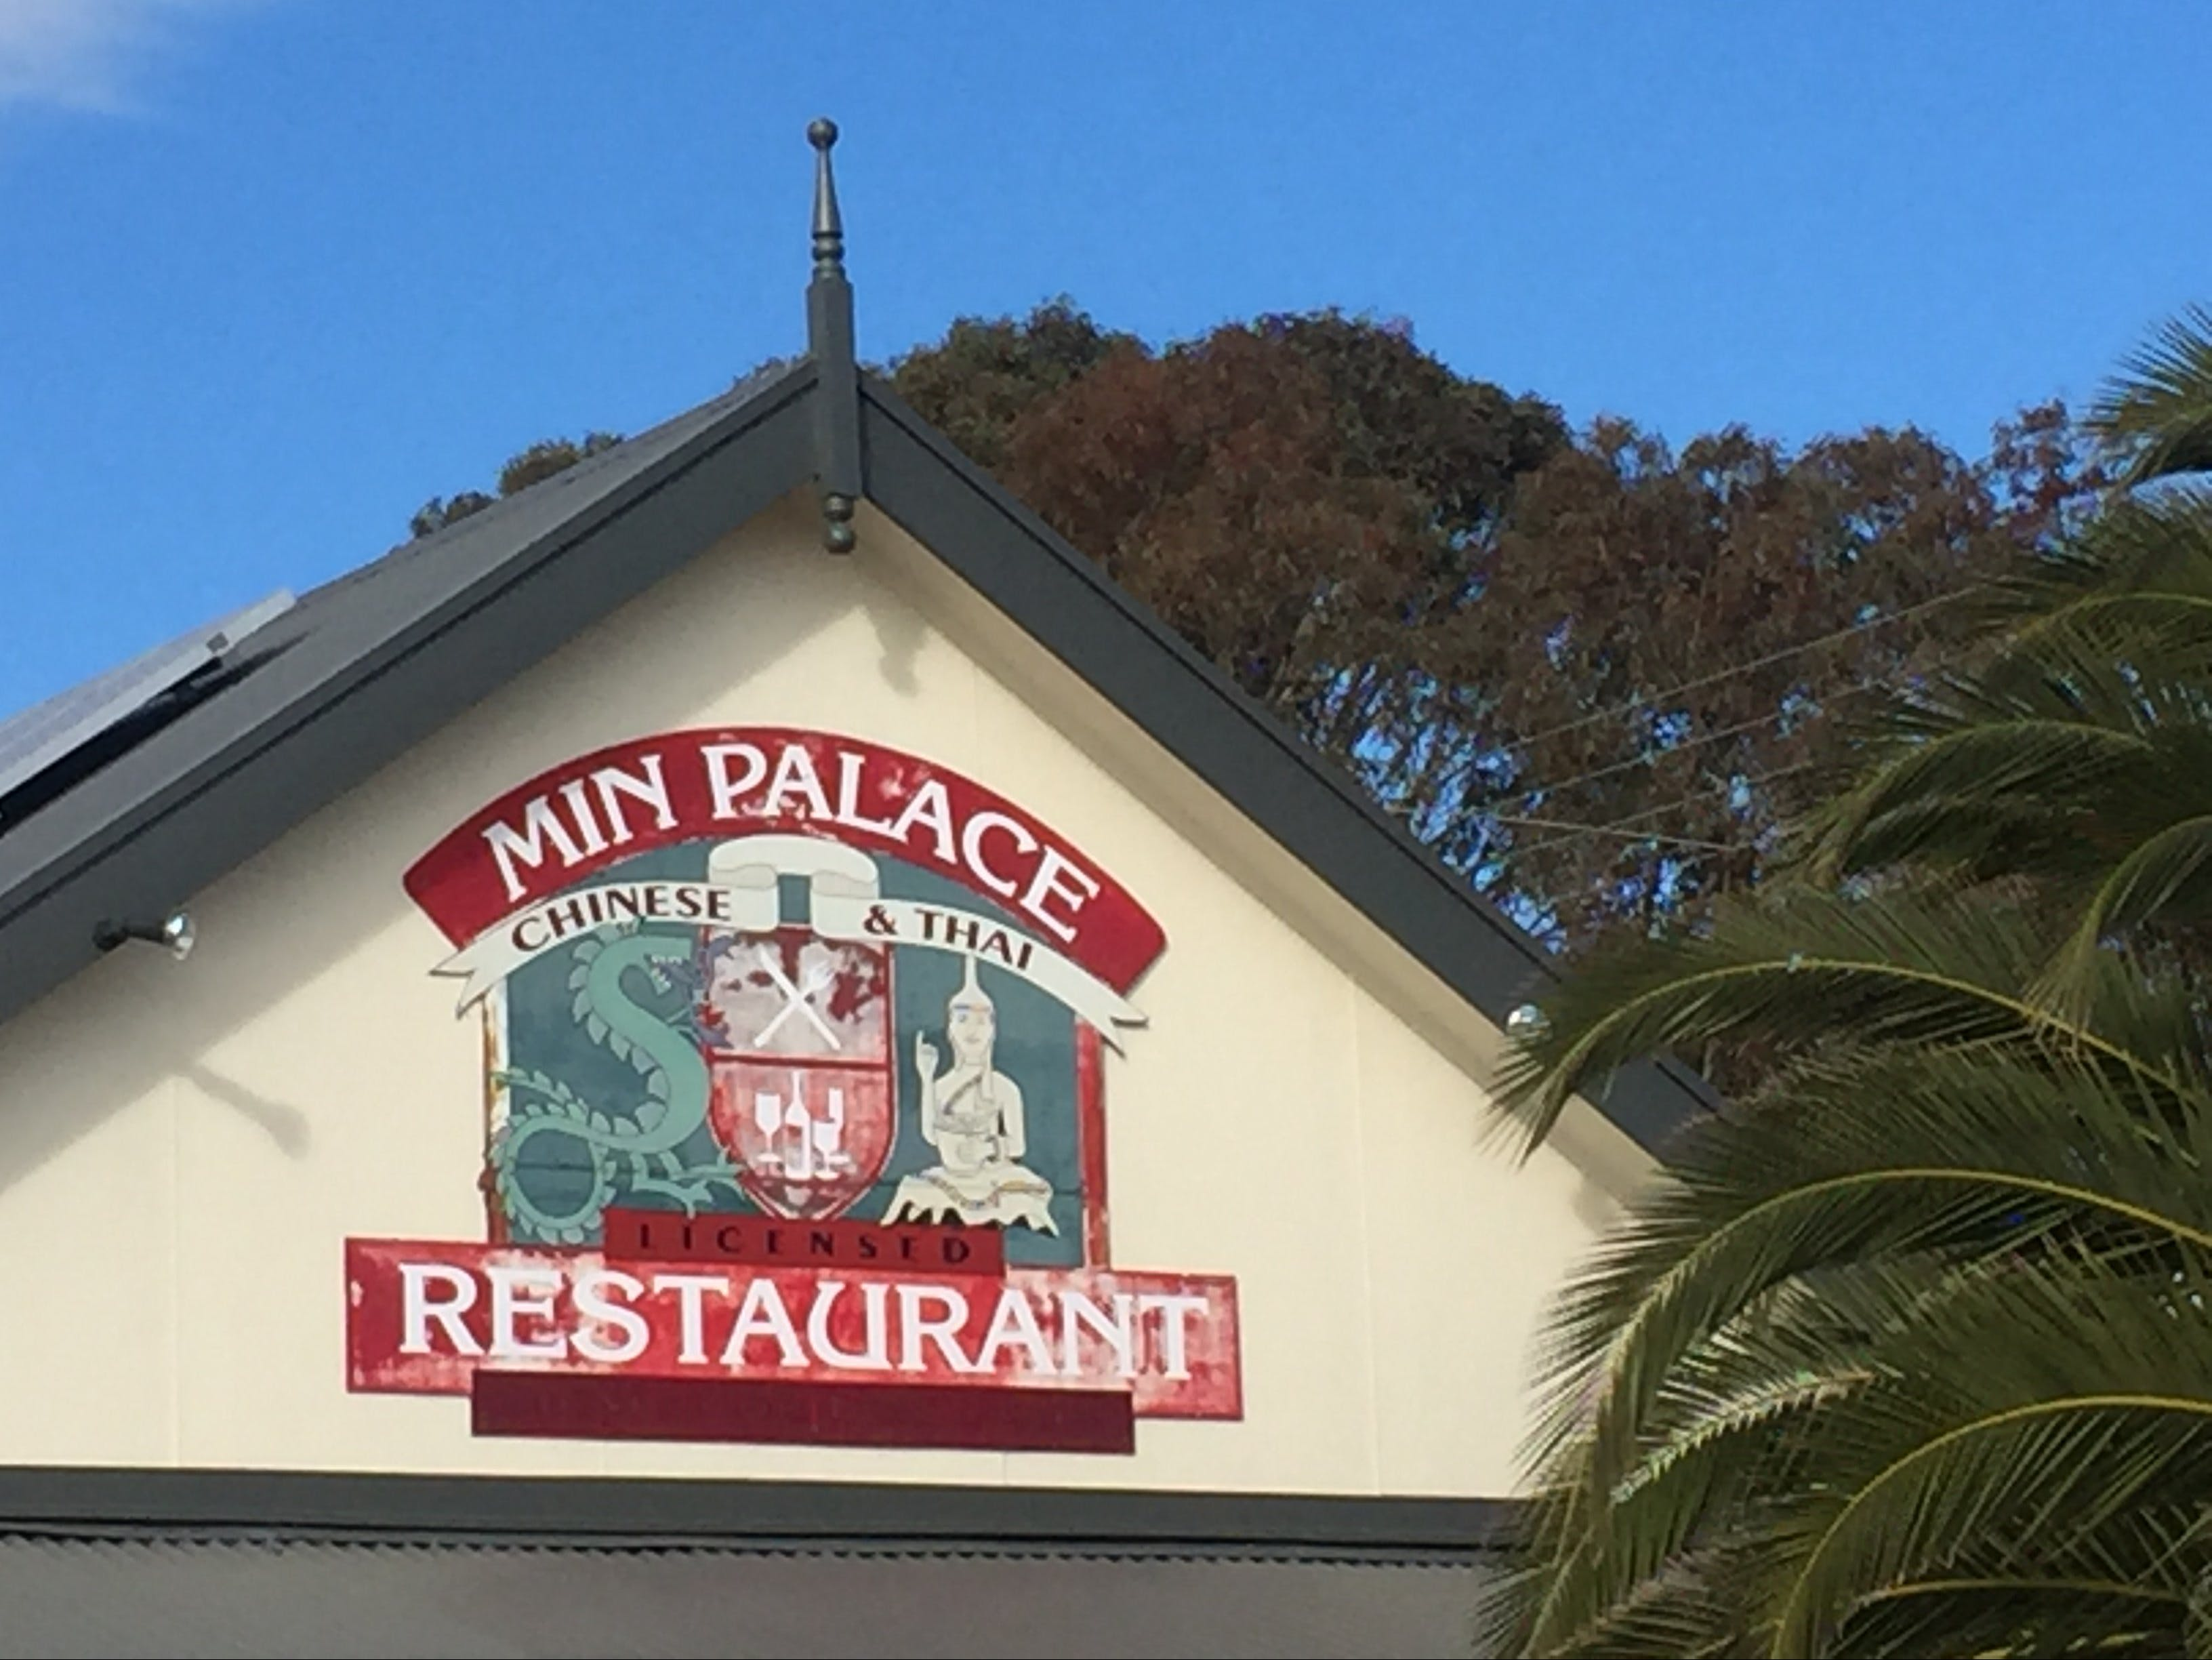 Min Palace Chinese and Thai Restaurant - Food Delivery Shop